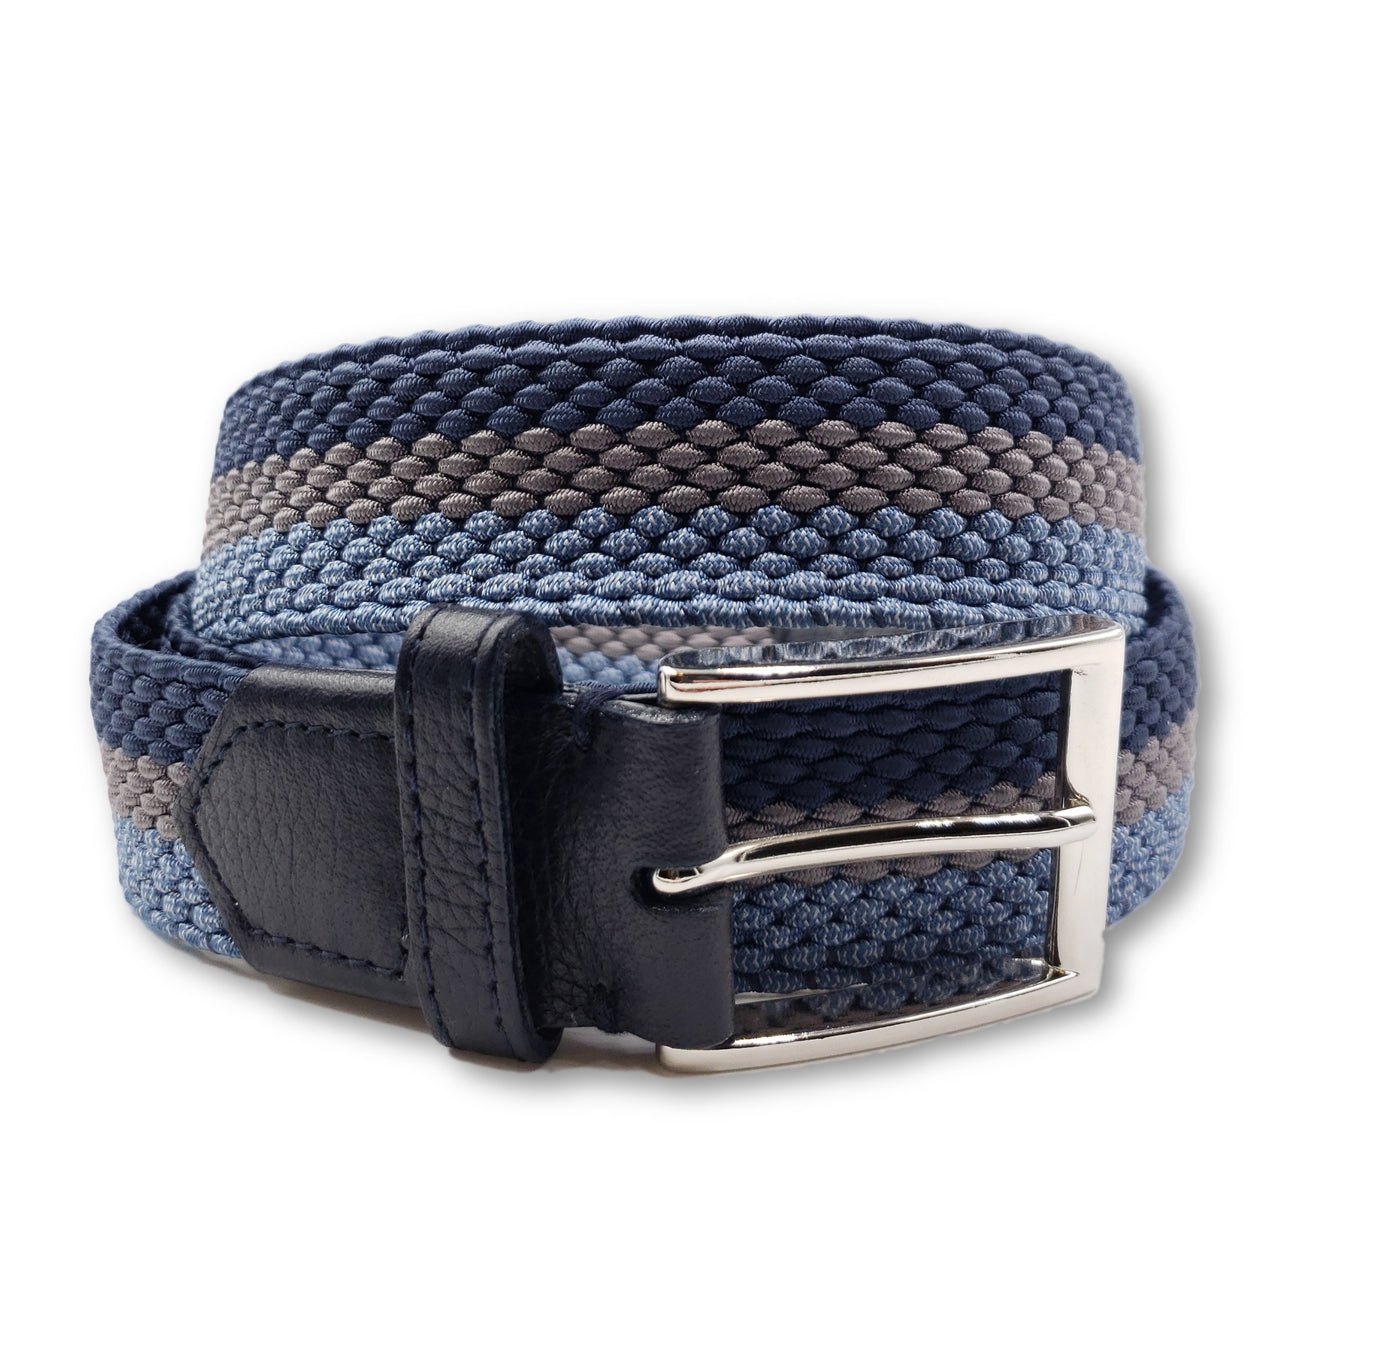 084488826f Light Blue & Grey Striped Elastic Stretch Belt